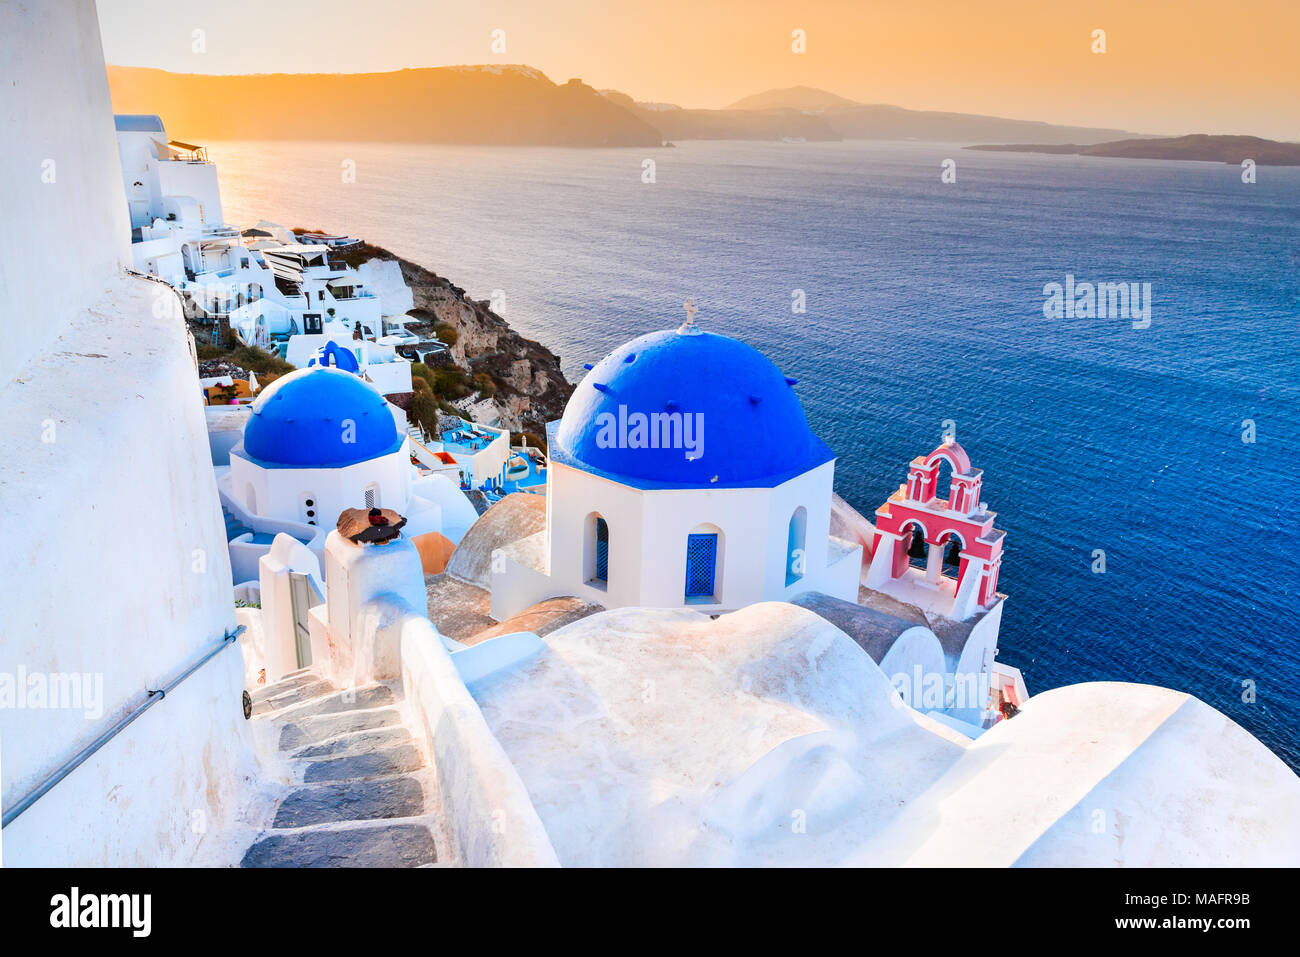 Santorini, Greece. Oia, white village with cobbled narrow paths, famous attraction of Greek Cyclades Islands, Aegean Sea. Stock Photo